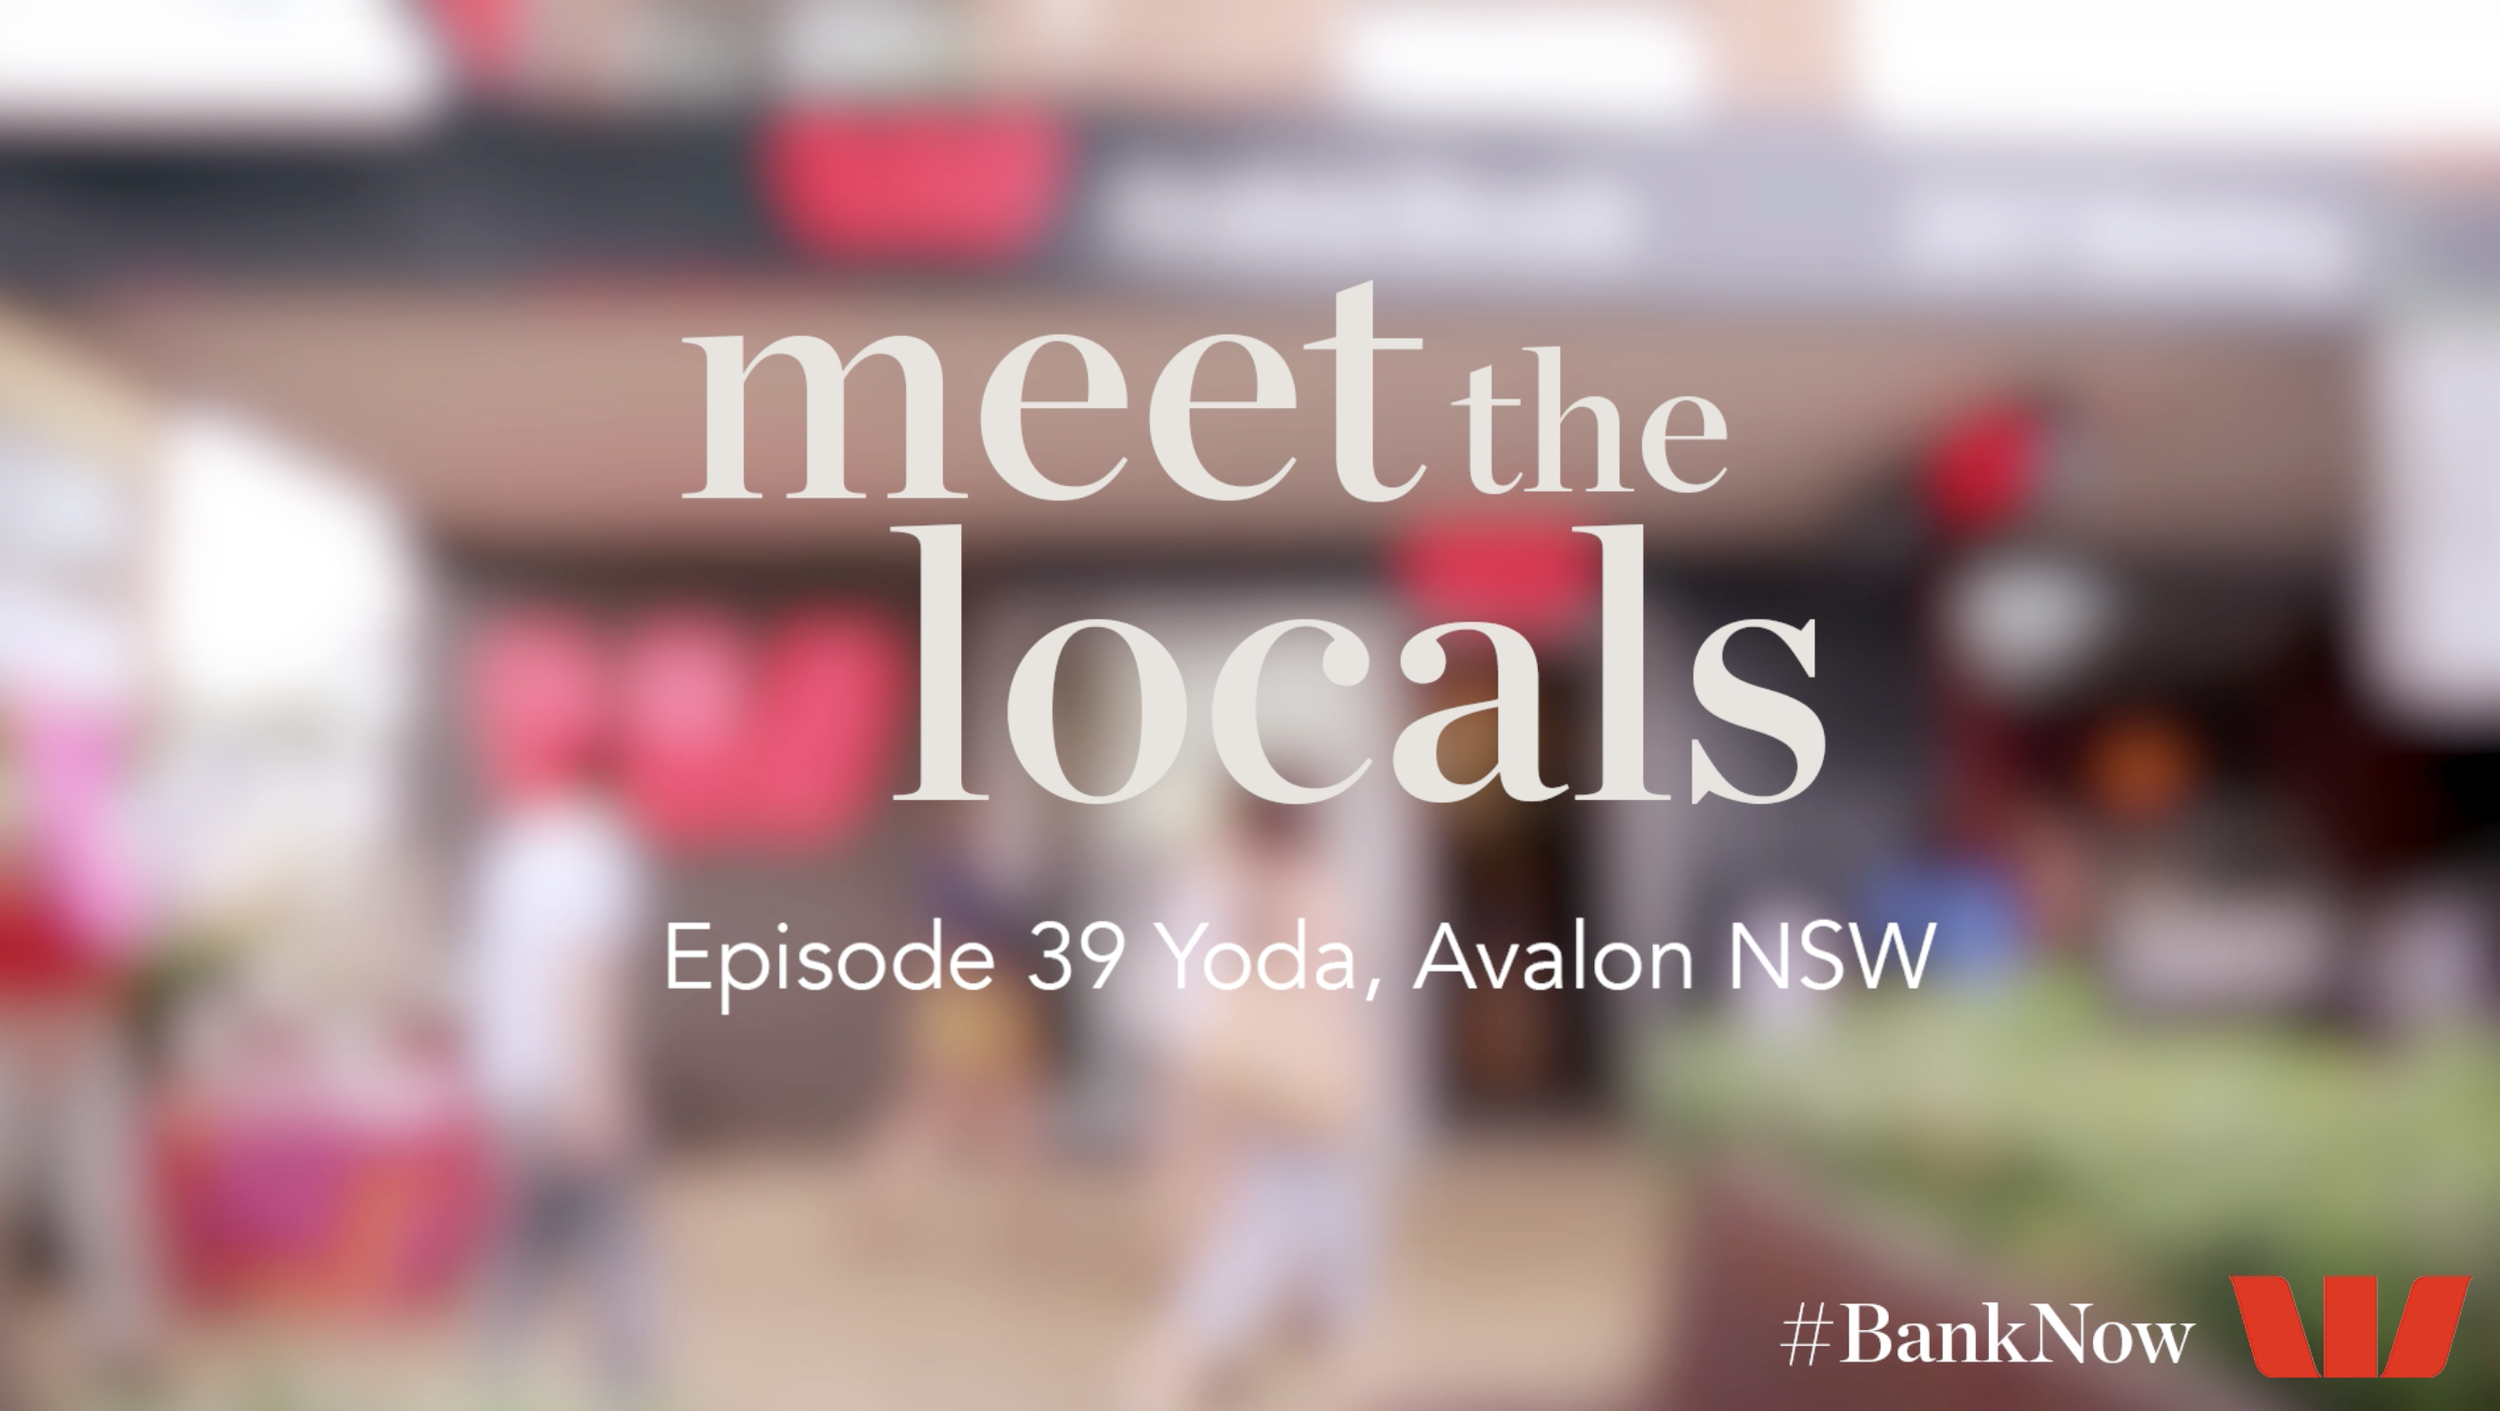 MEET THE LOCALS: This video designed for Facebook video ad product was put through a custom audience to meet the locals, supporting the BankNow branch openings. This links to a video on YouTube.